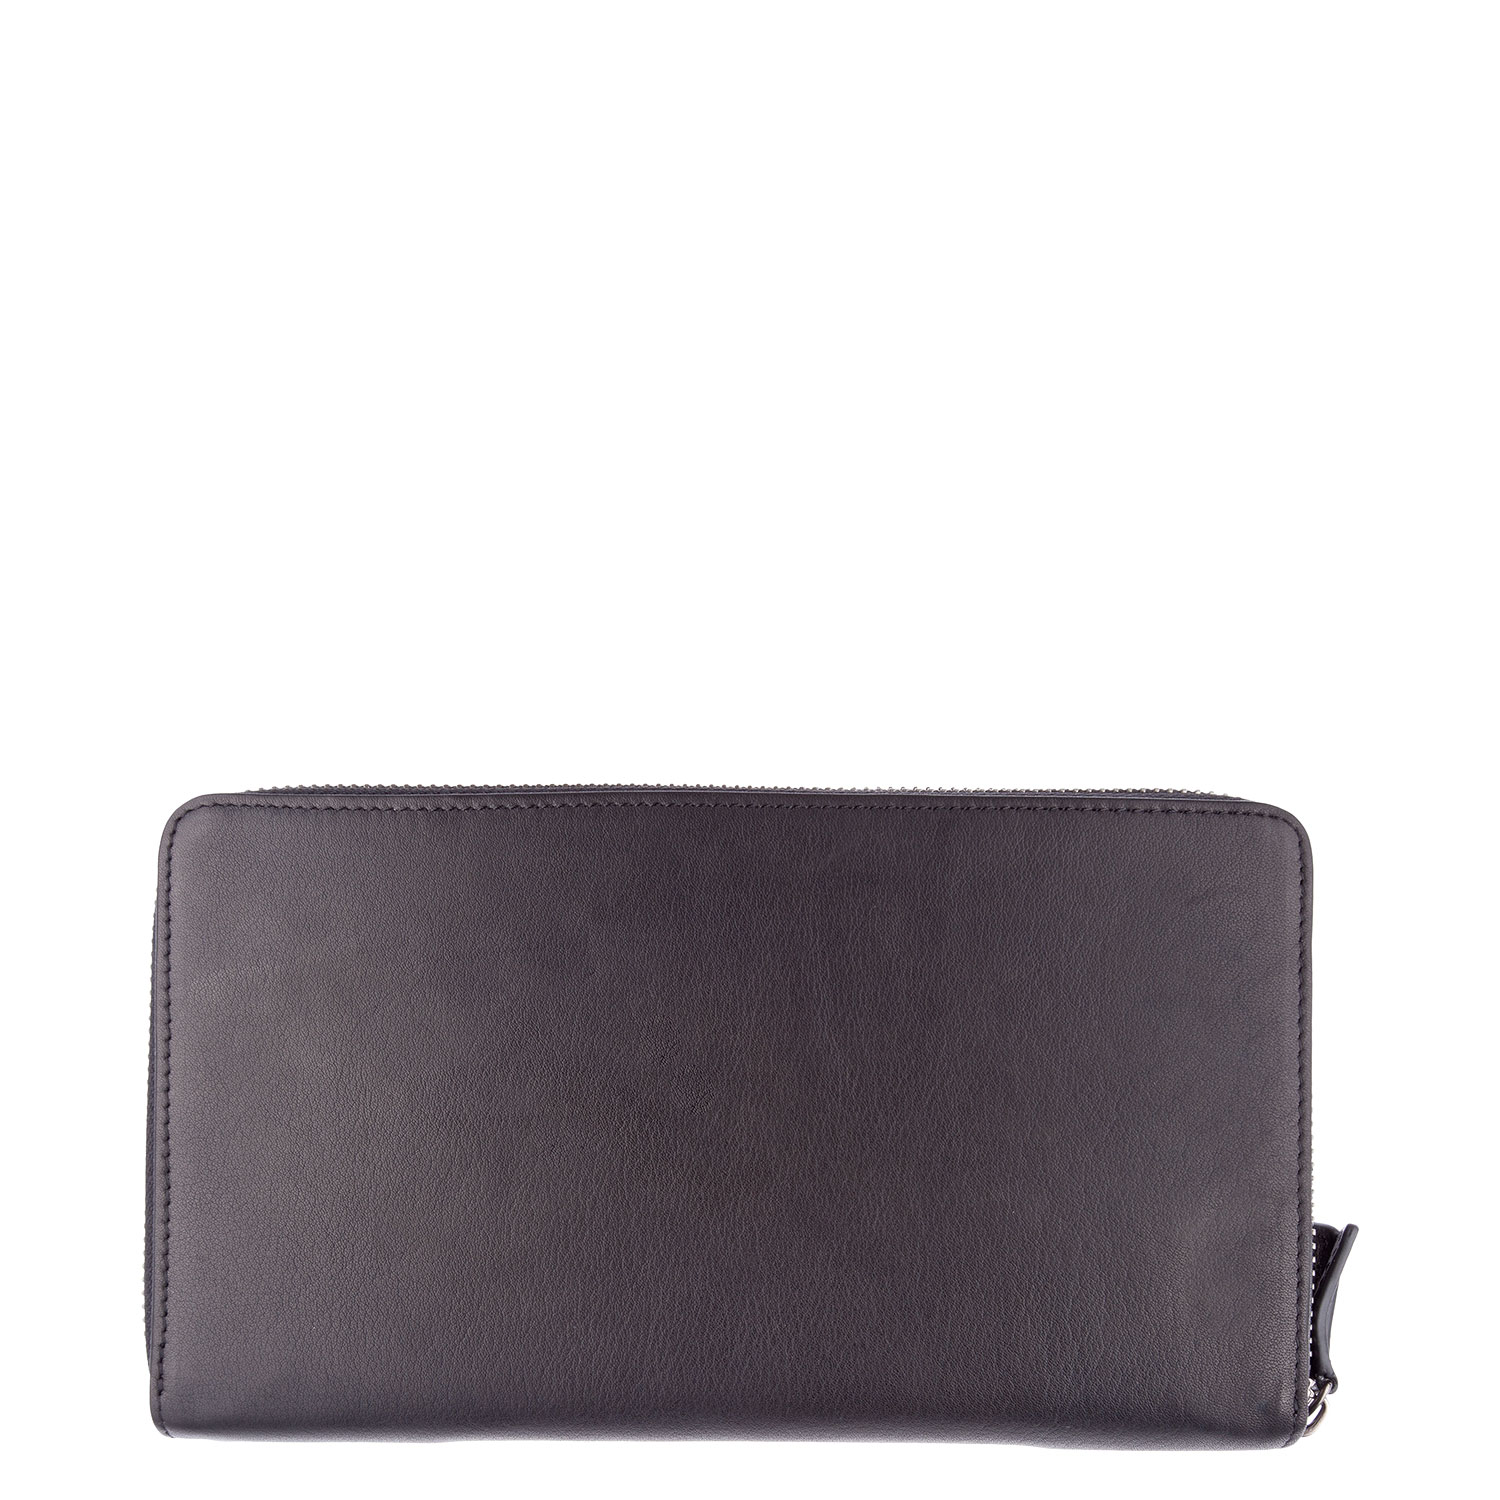 Travel wallet PAZOLINI BS-N1933-1R3